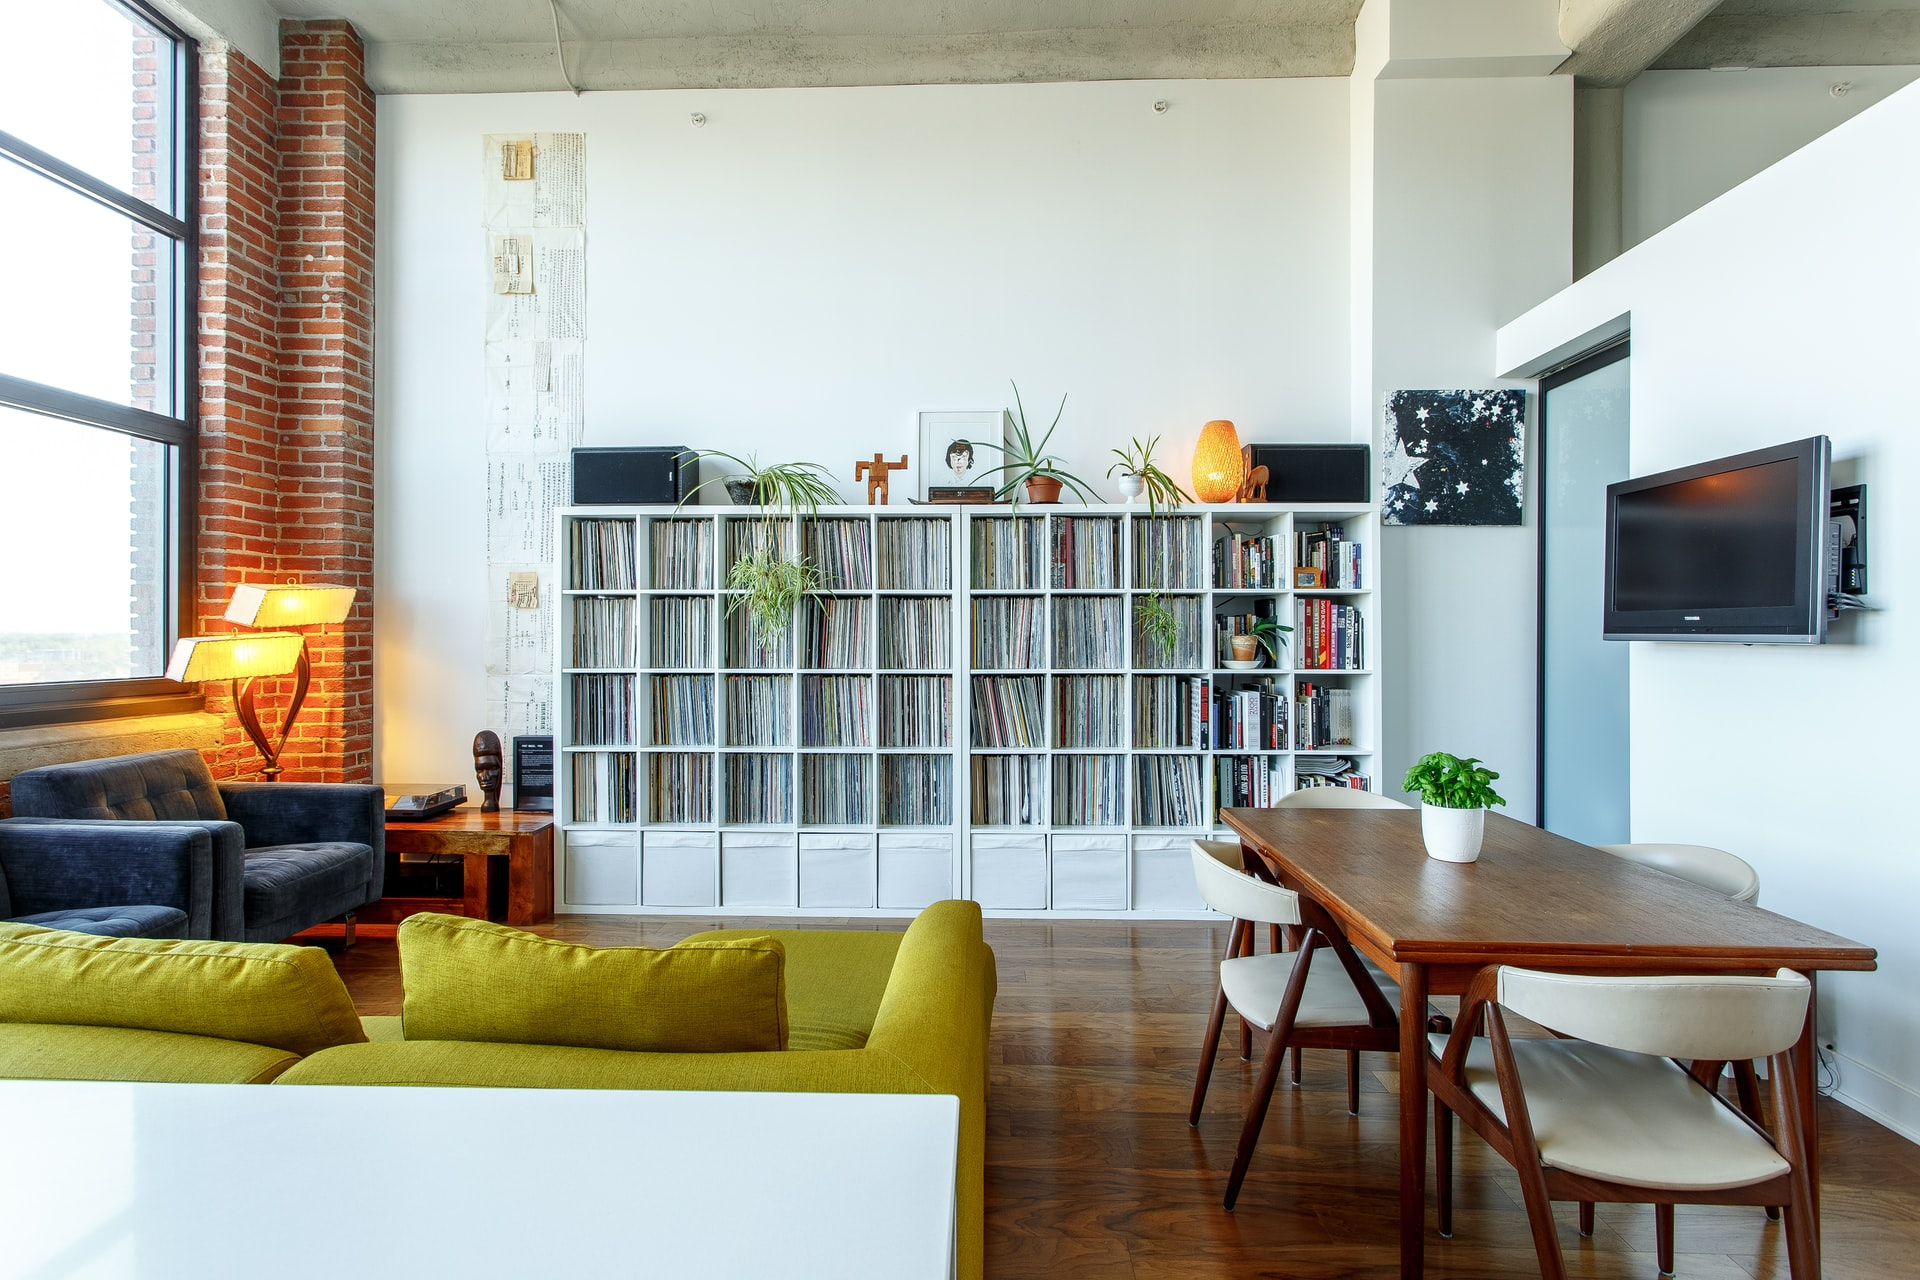 3 Budget Friendly Ways to Increase Your Homes' Value